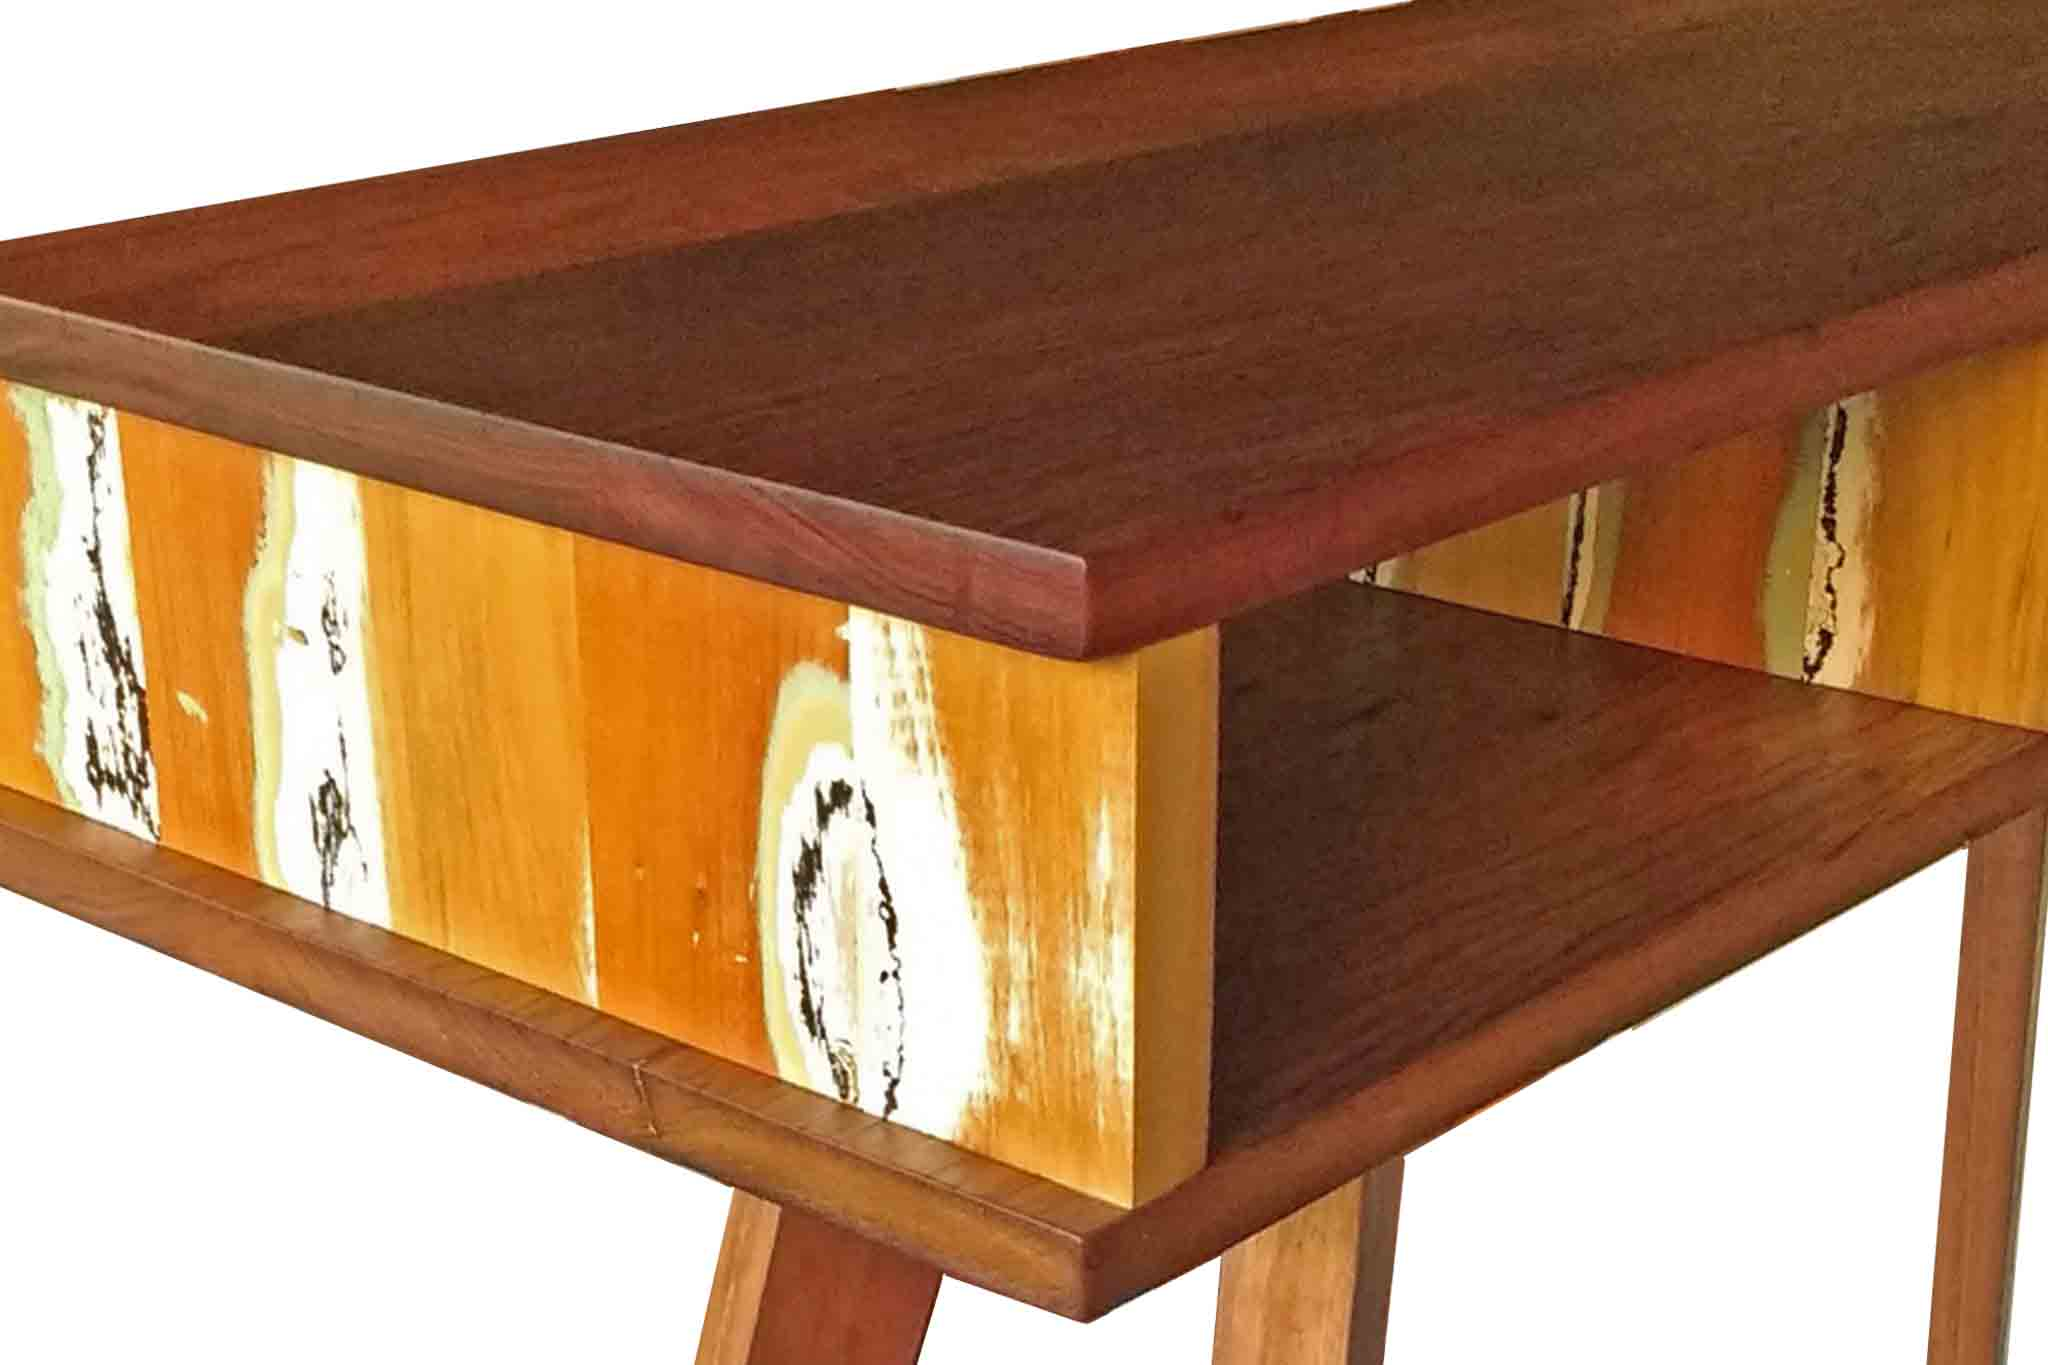 Reclaimed timber hall console table custom made from recycled Australian hardwoods by One Tree Studio.